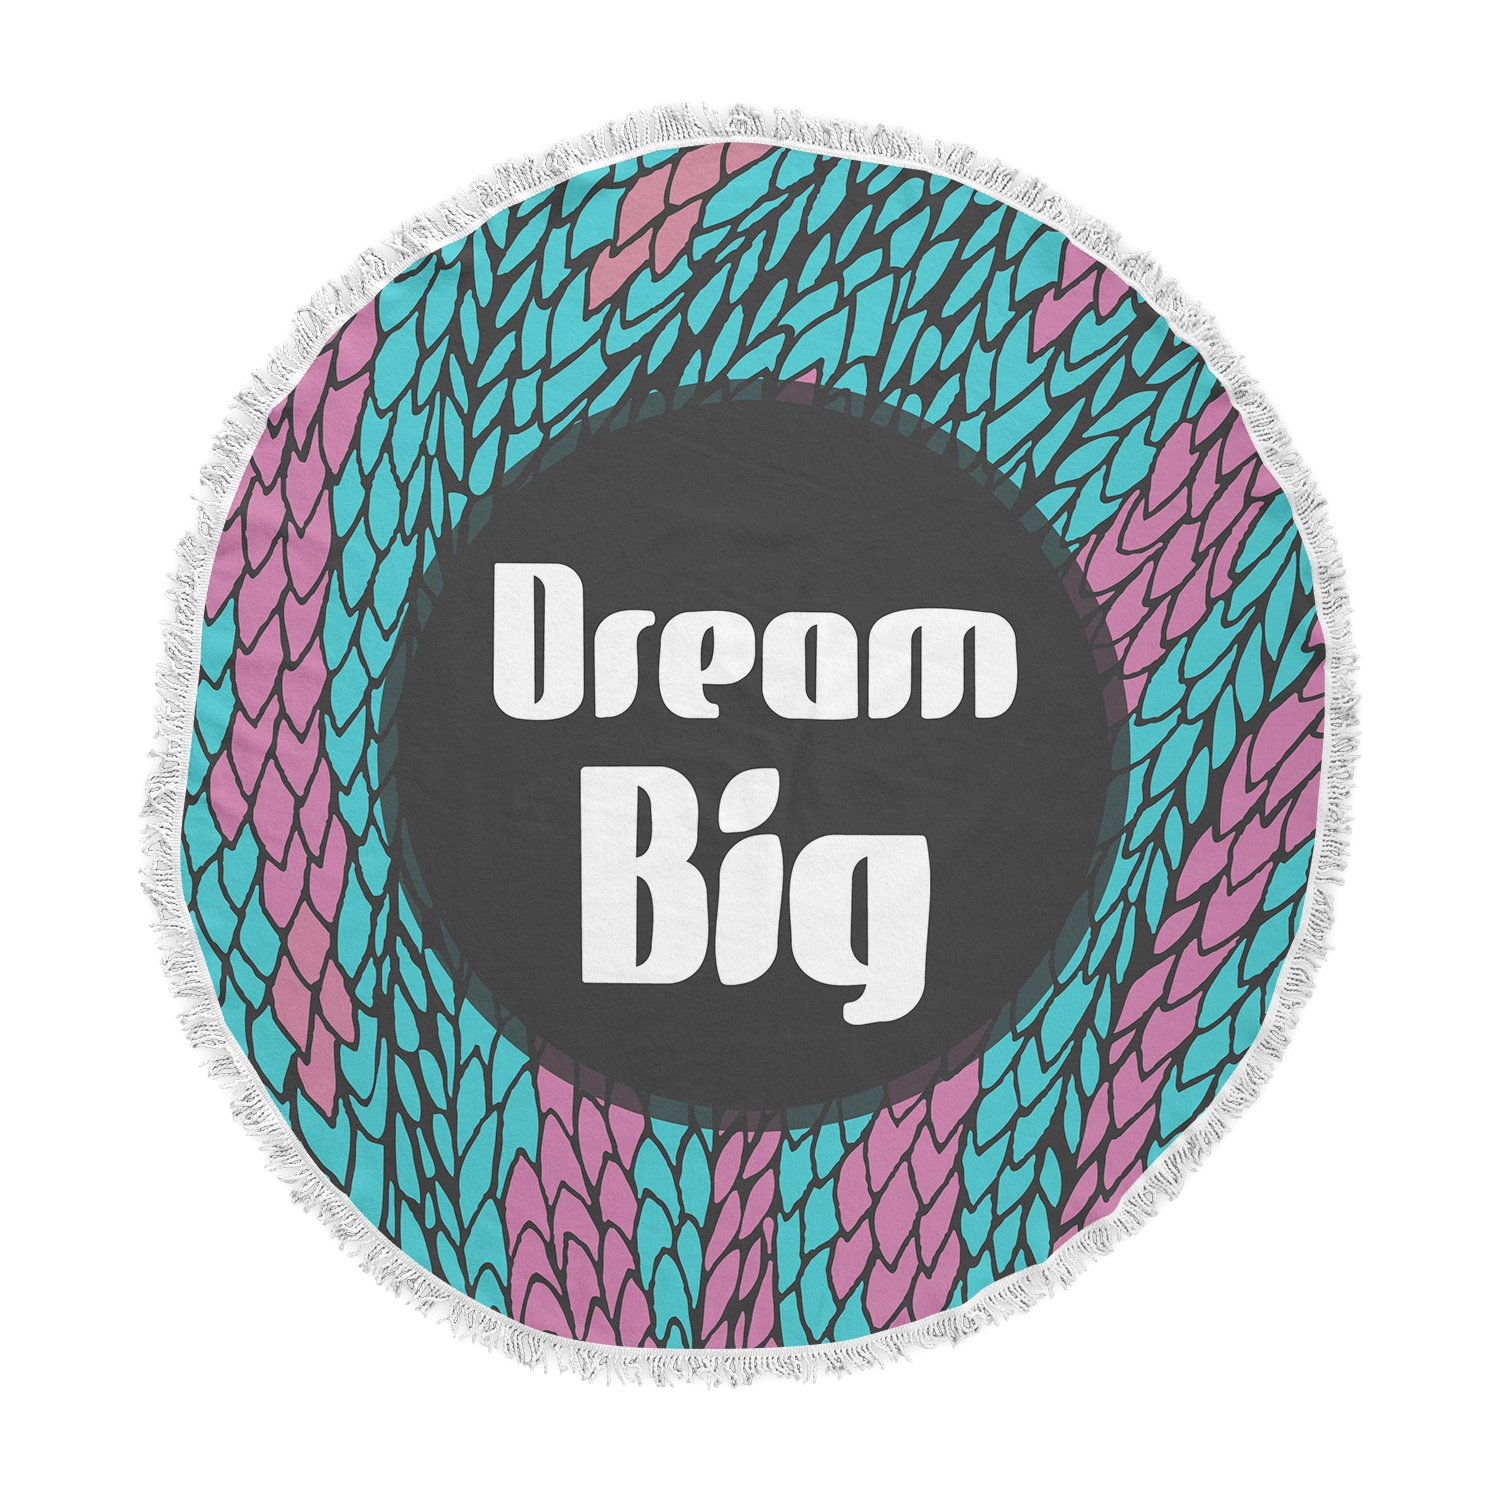 Kess InHouse Pom Graphic Design Dream Big Blue Purple Round Beach Towel Blanket